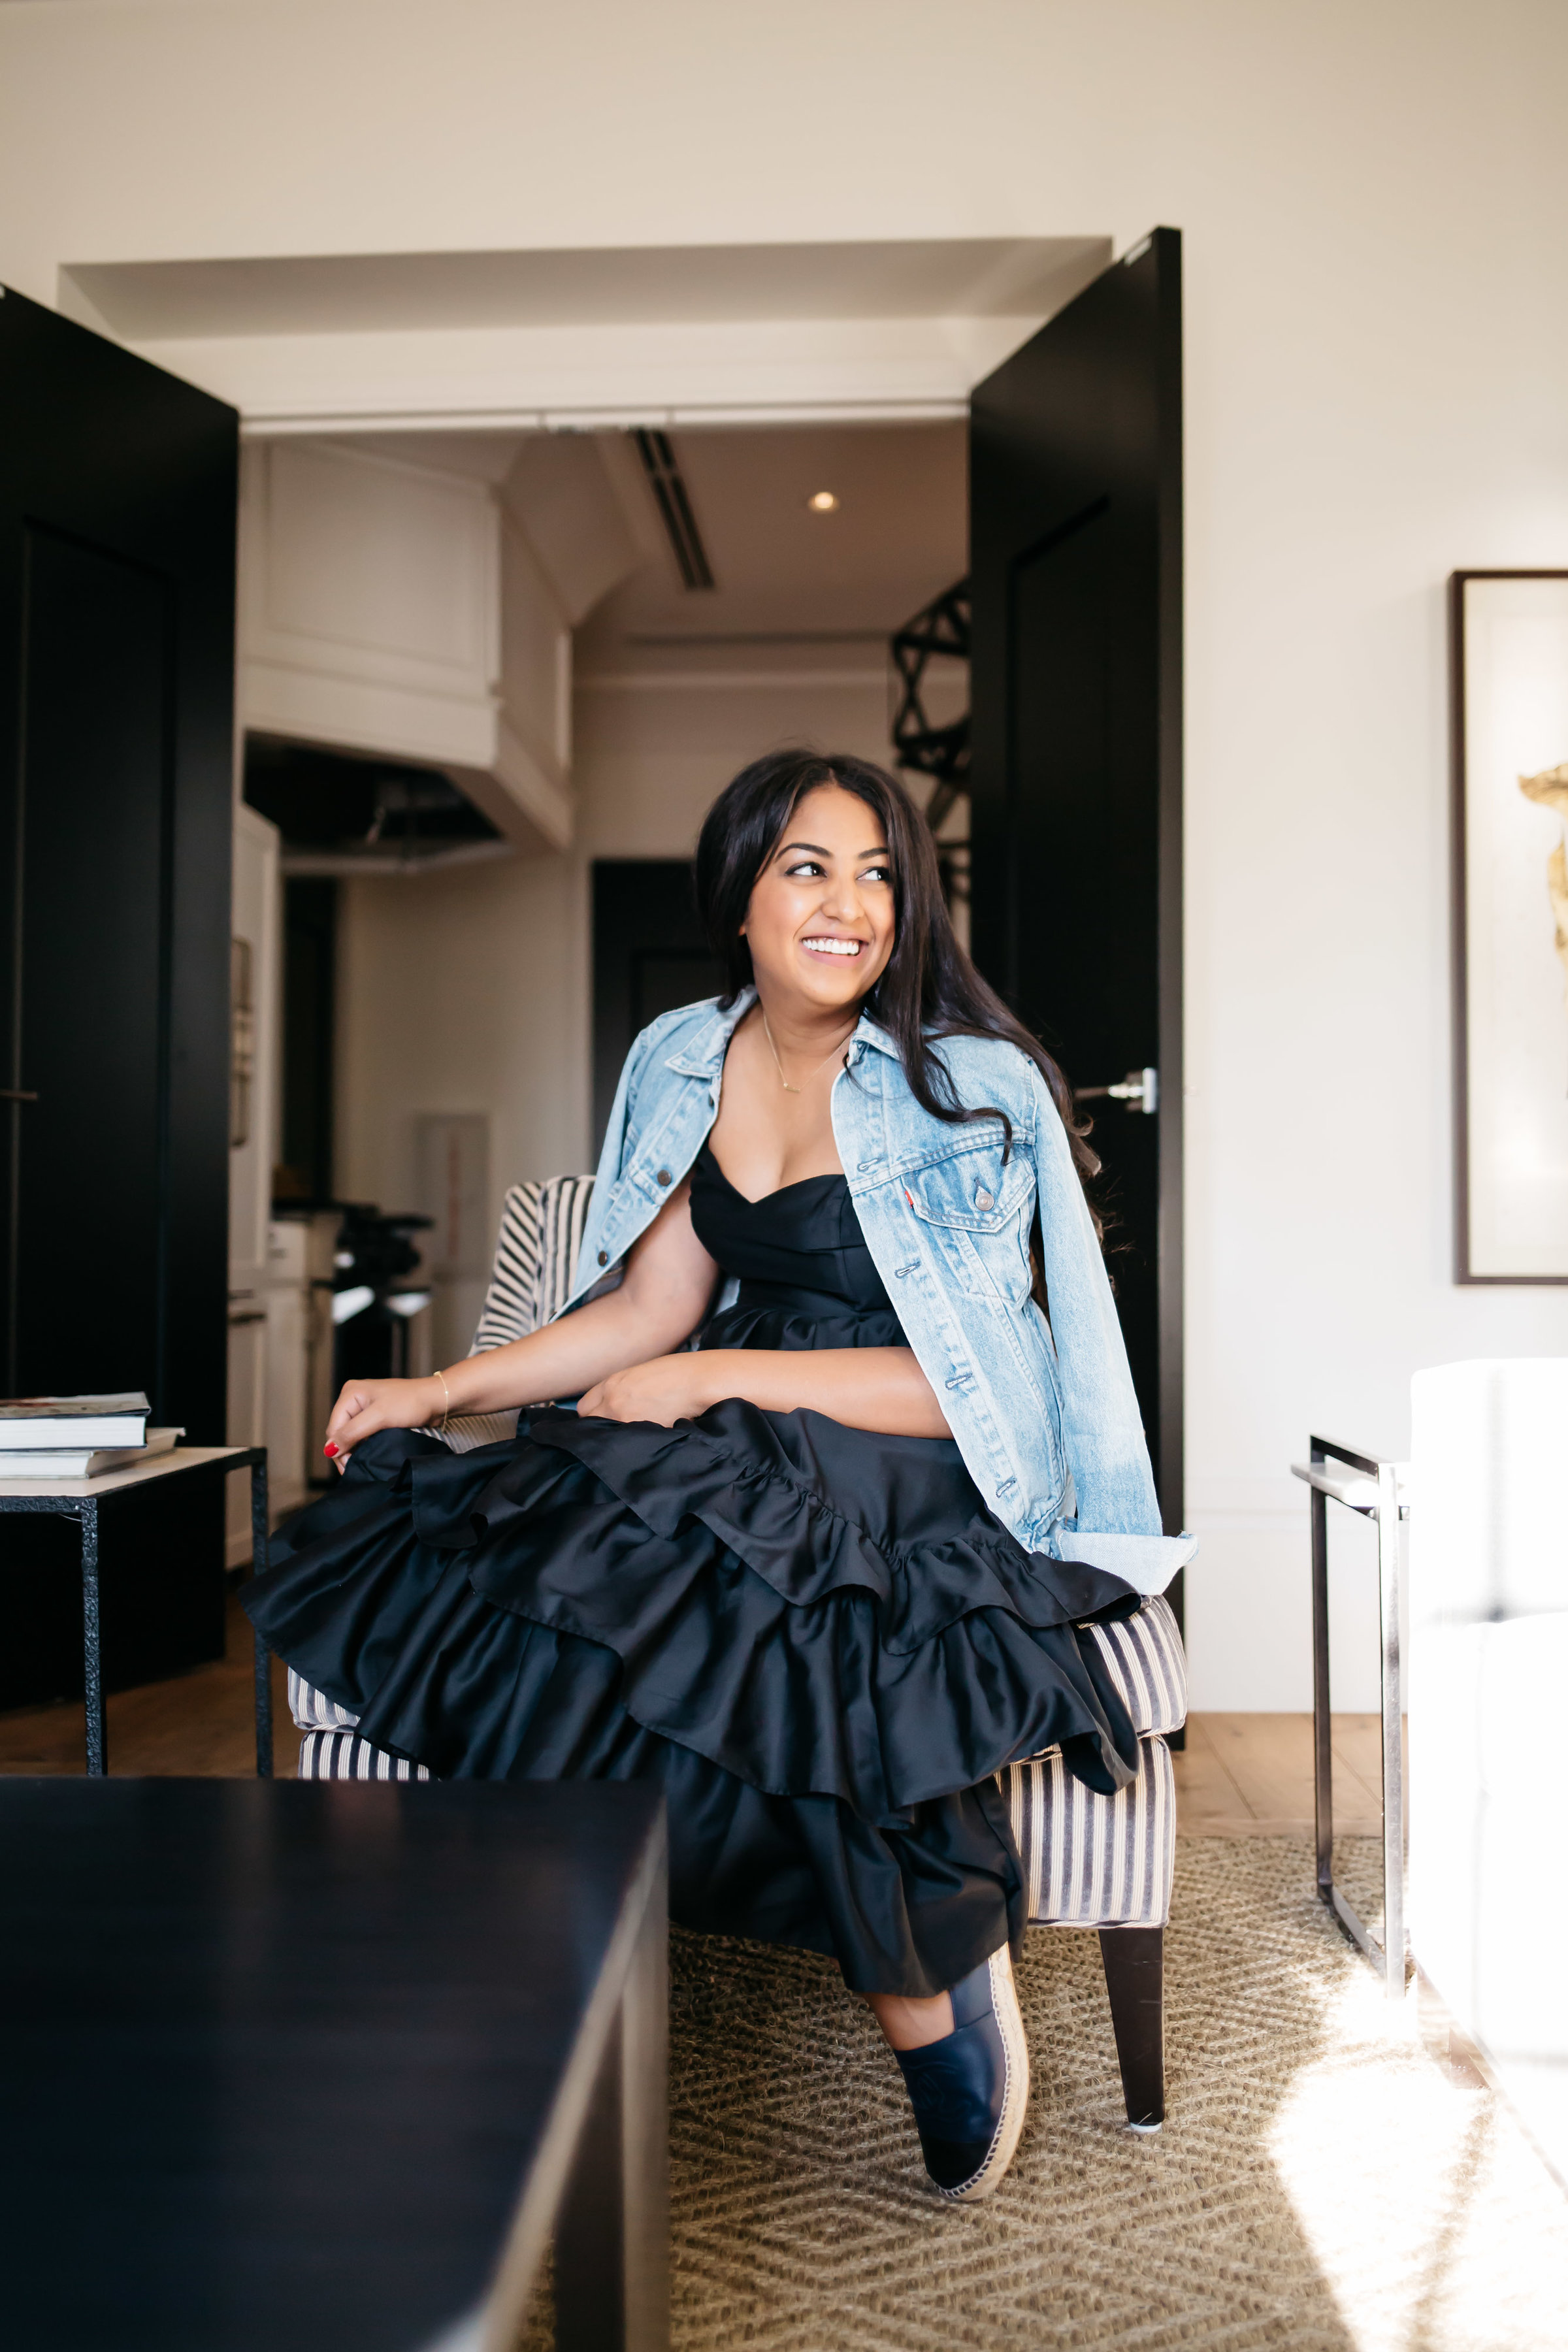 A Casual Spin on Ruffles